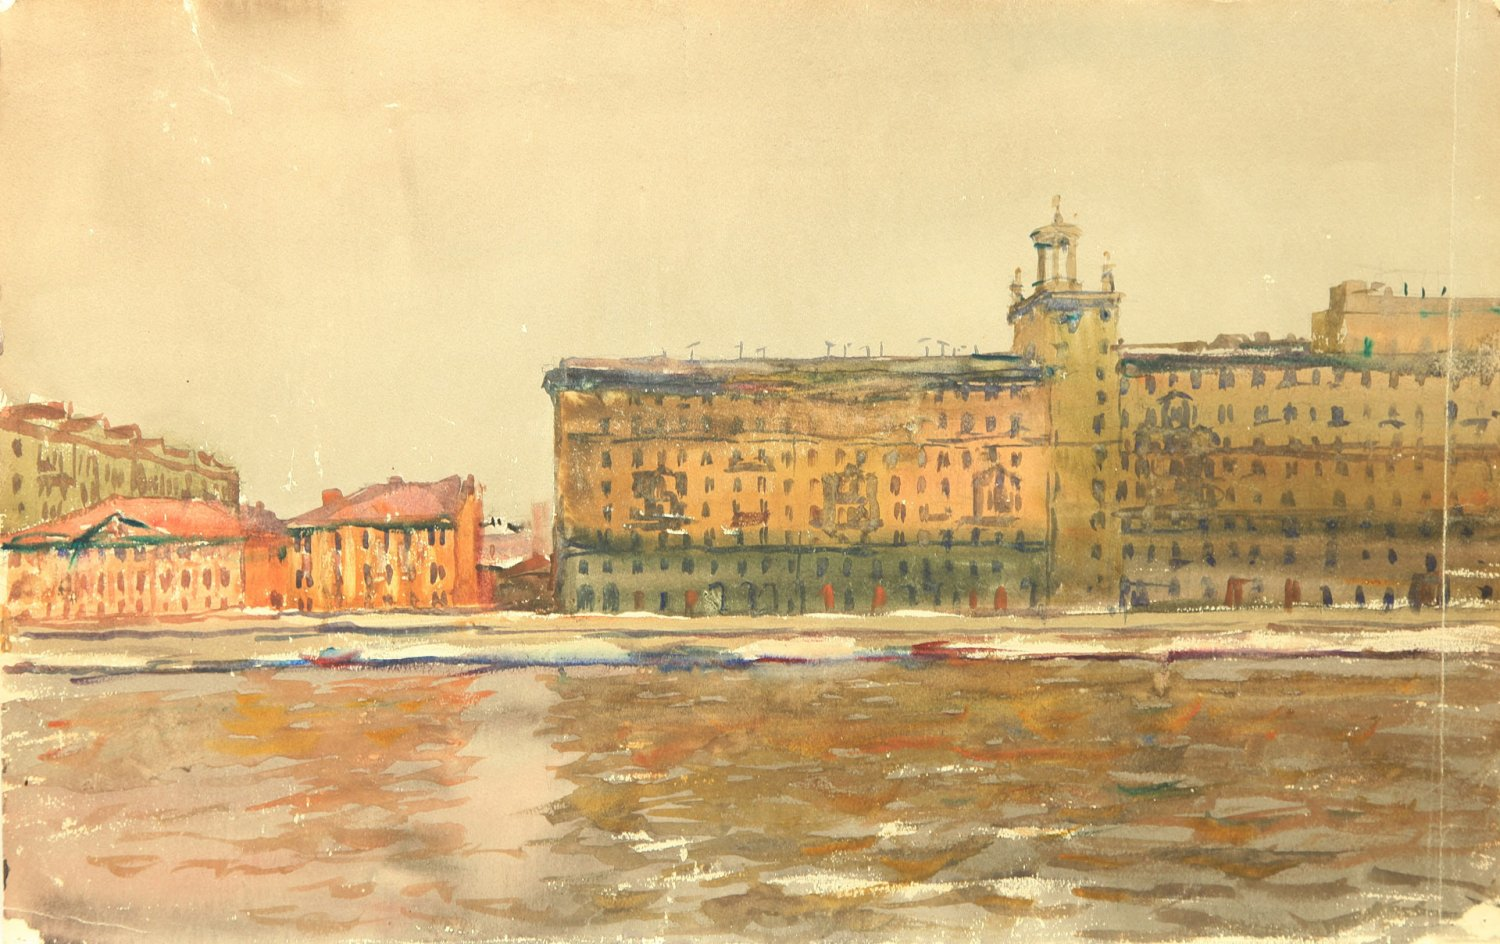 View of the Moscow river from Central Gorky Park, 1950